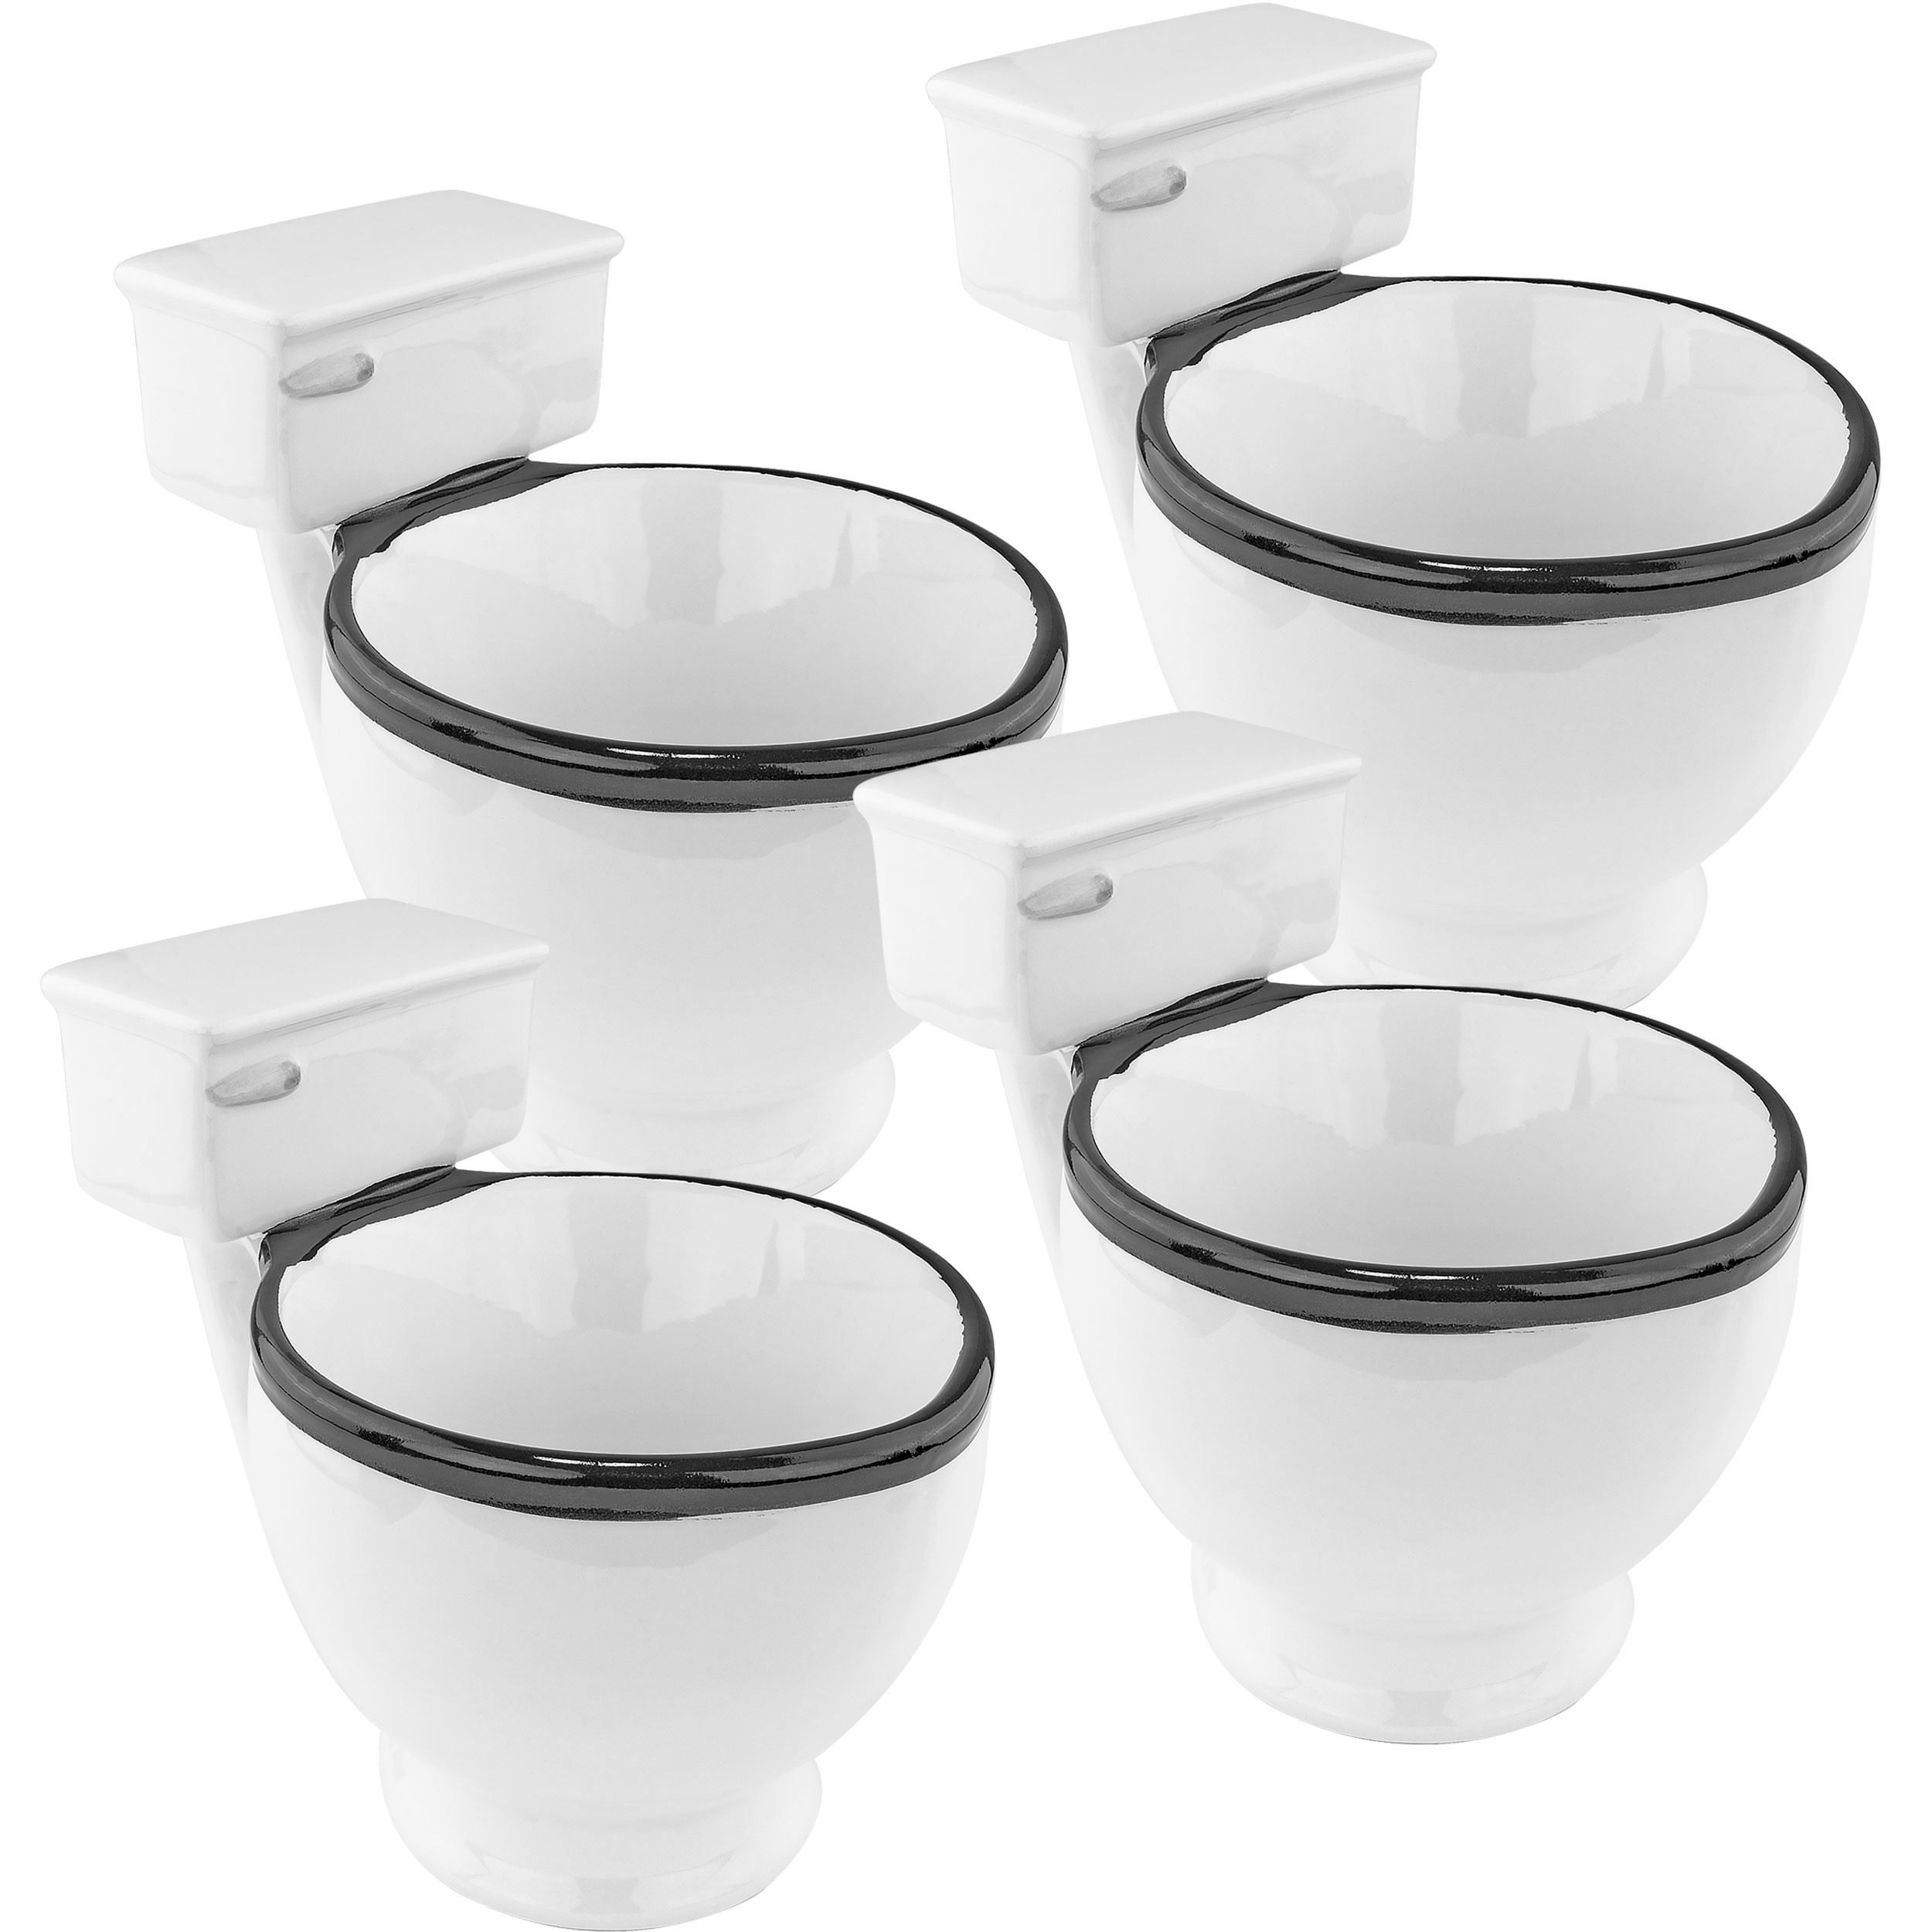 Ceramic Toilet Coffee Mug, 4 Pack